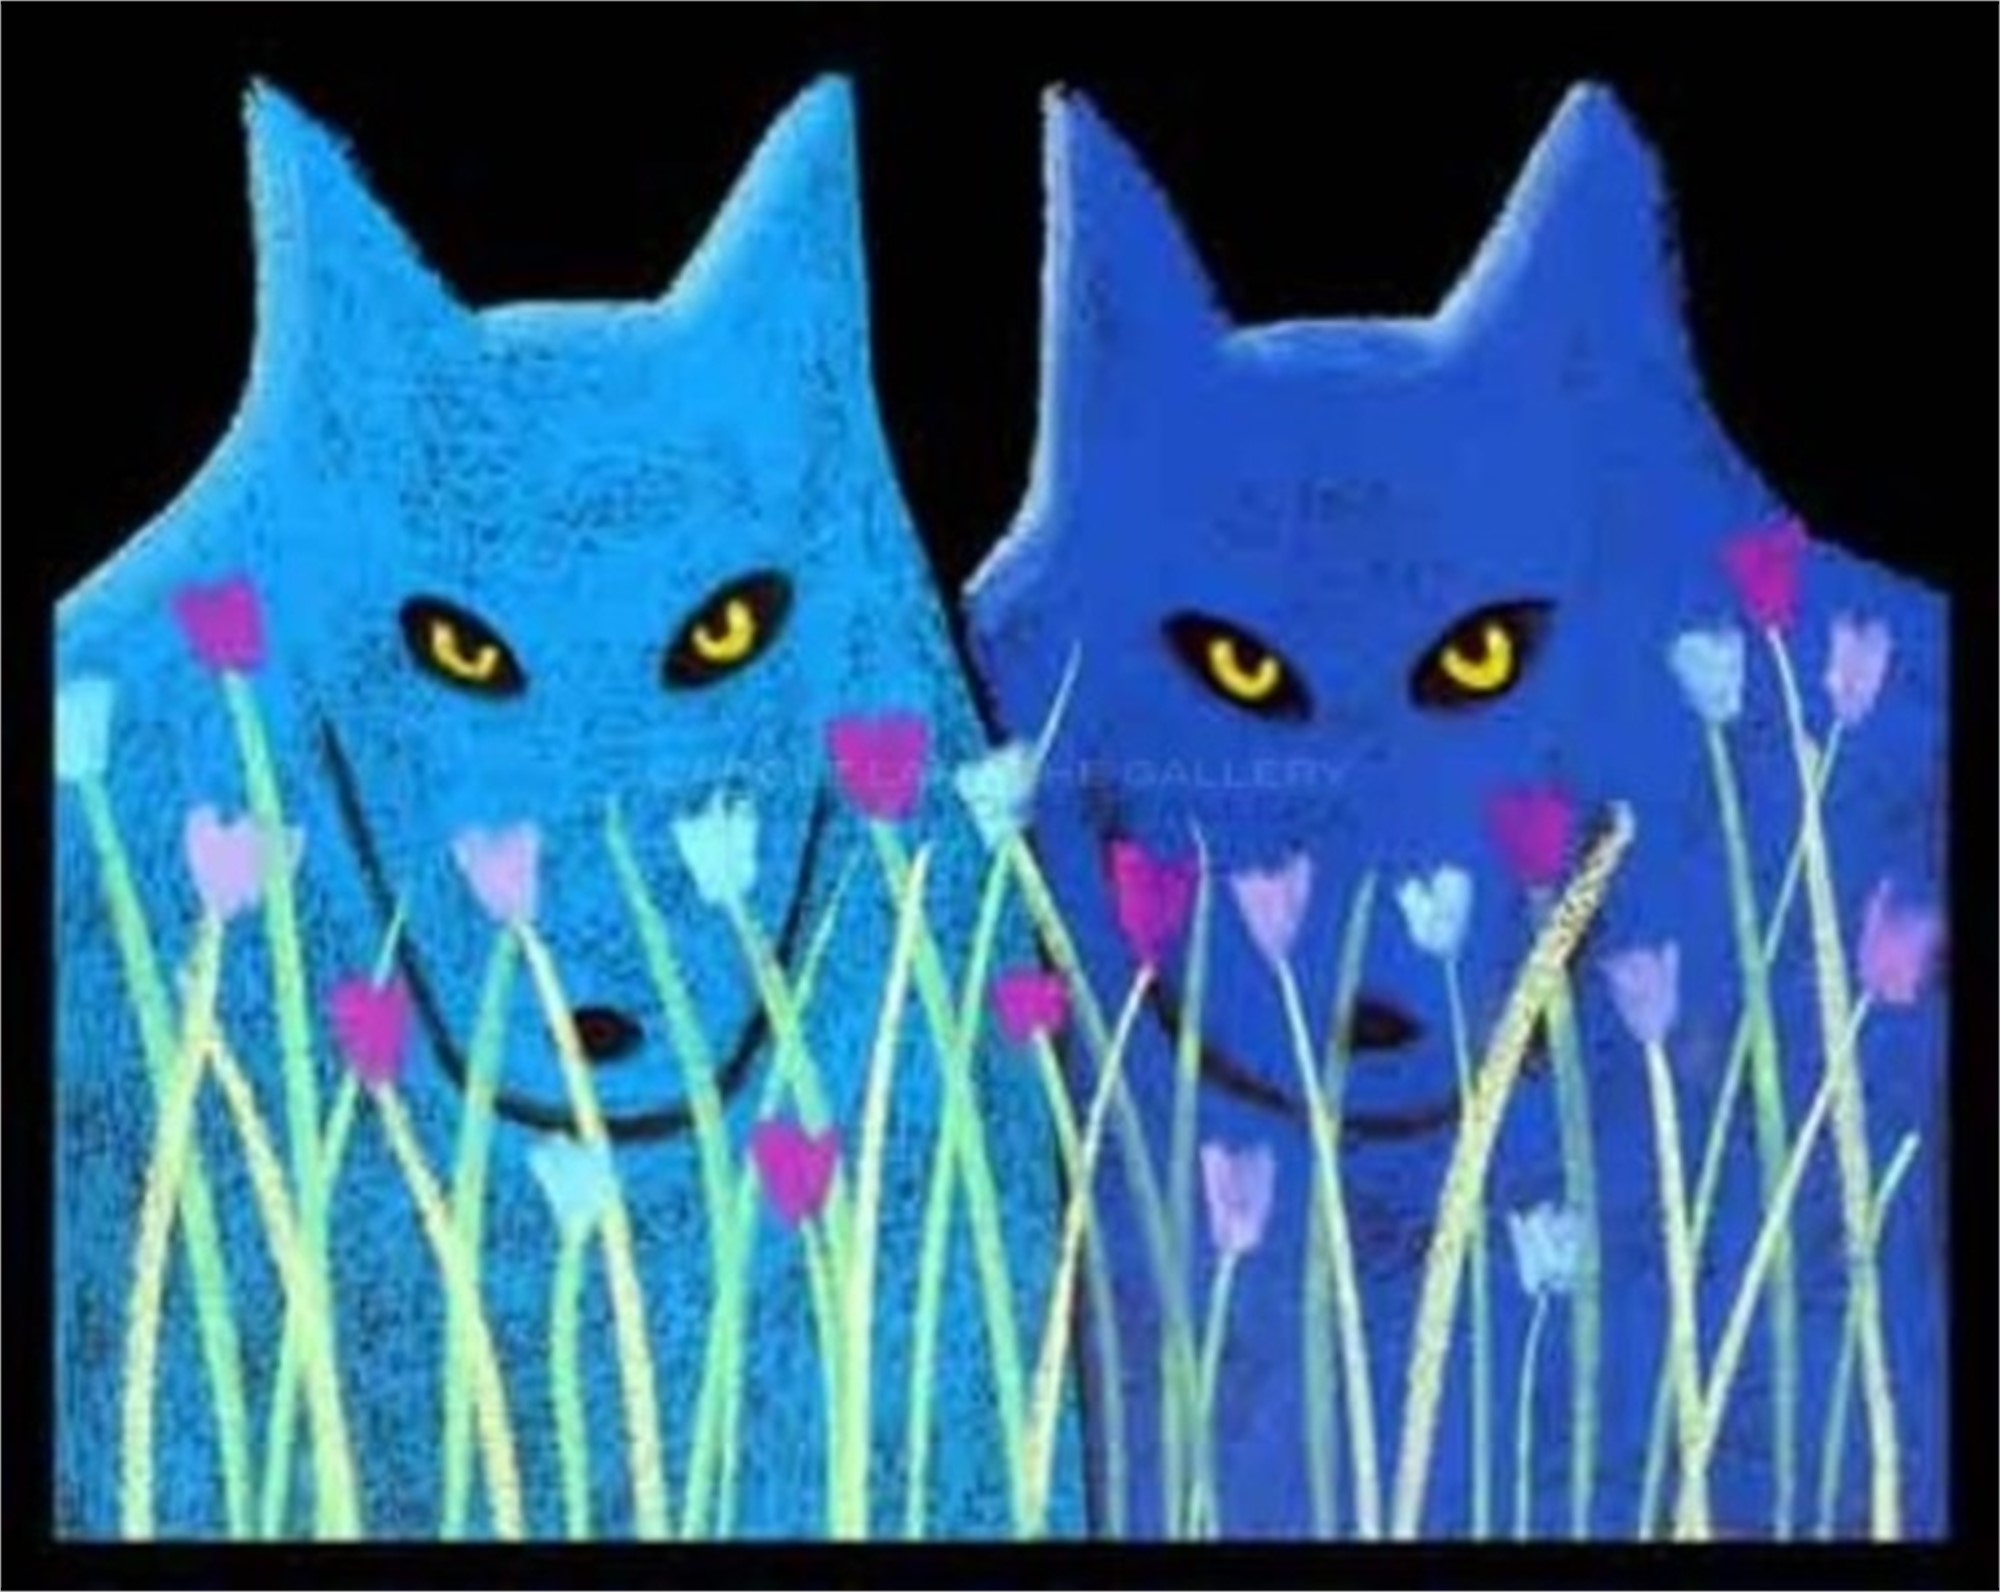 "TWO BLUE WOLVES WITH FLOWERS - limited edition giclee on paper w/frame size of 23""x27"" by Carole LaRoche"